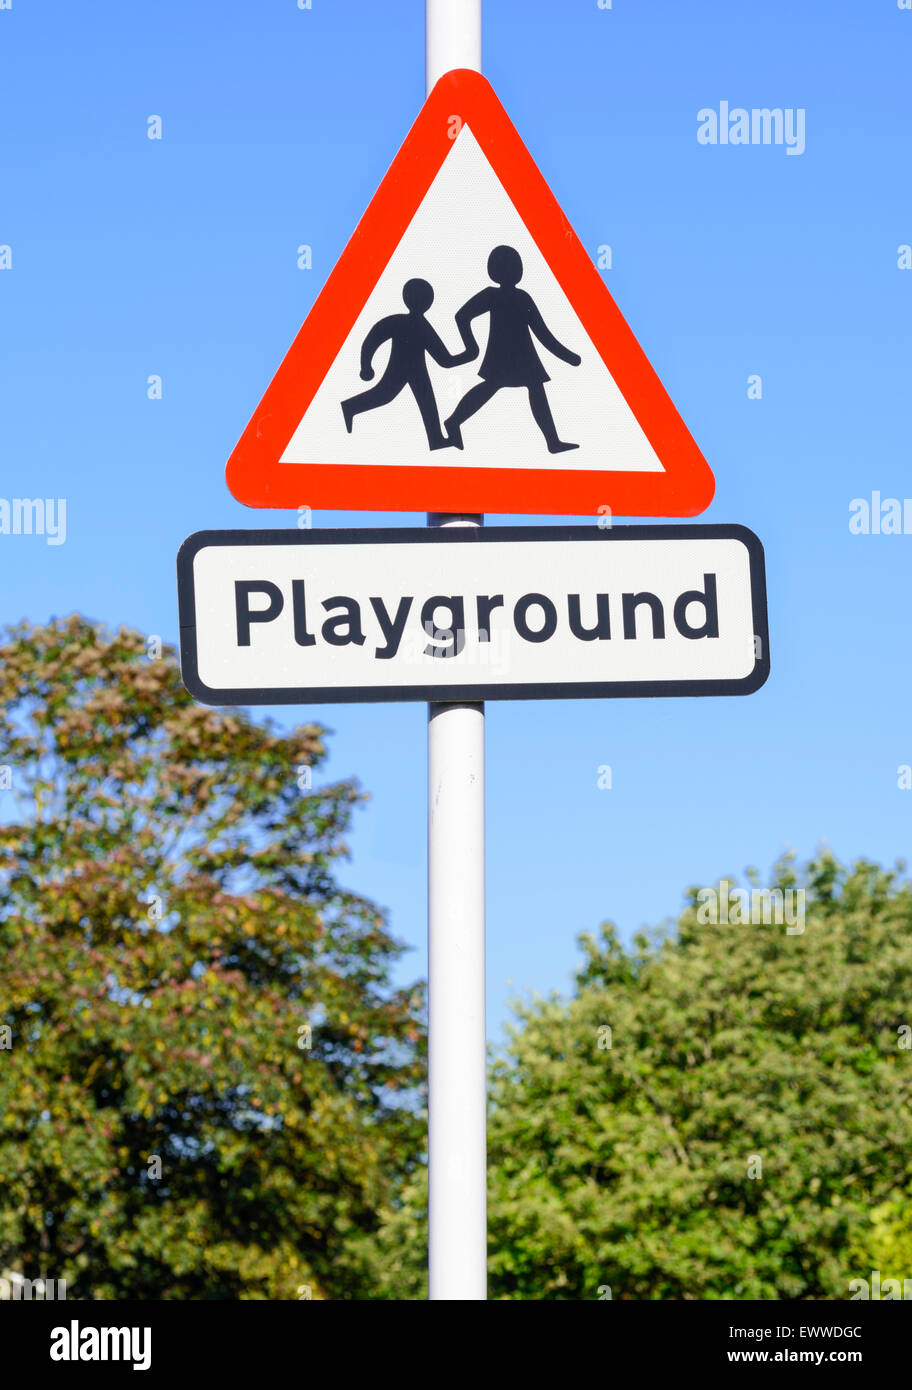 Triangular playground warning sign near a school in the UK. - Stock Image